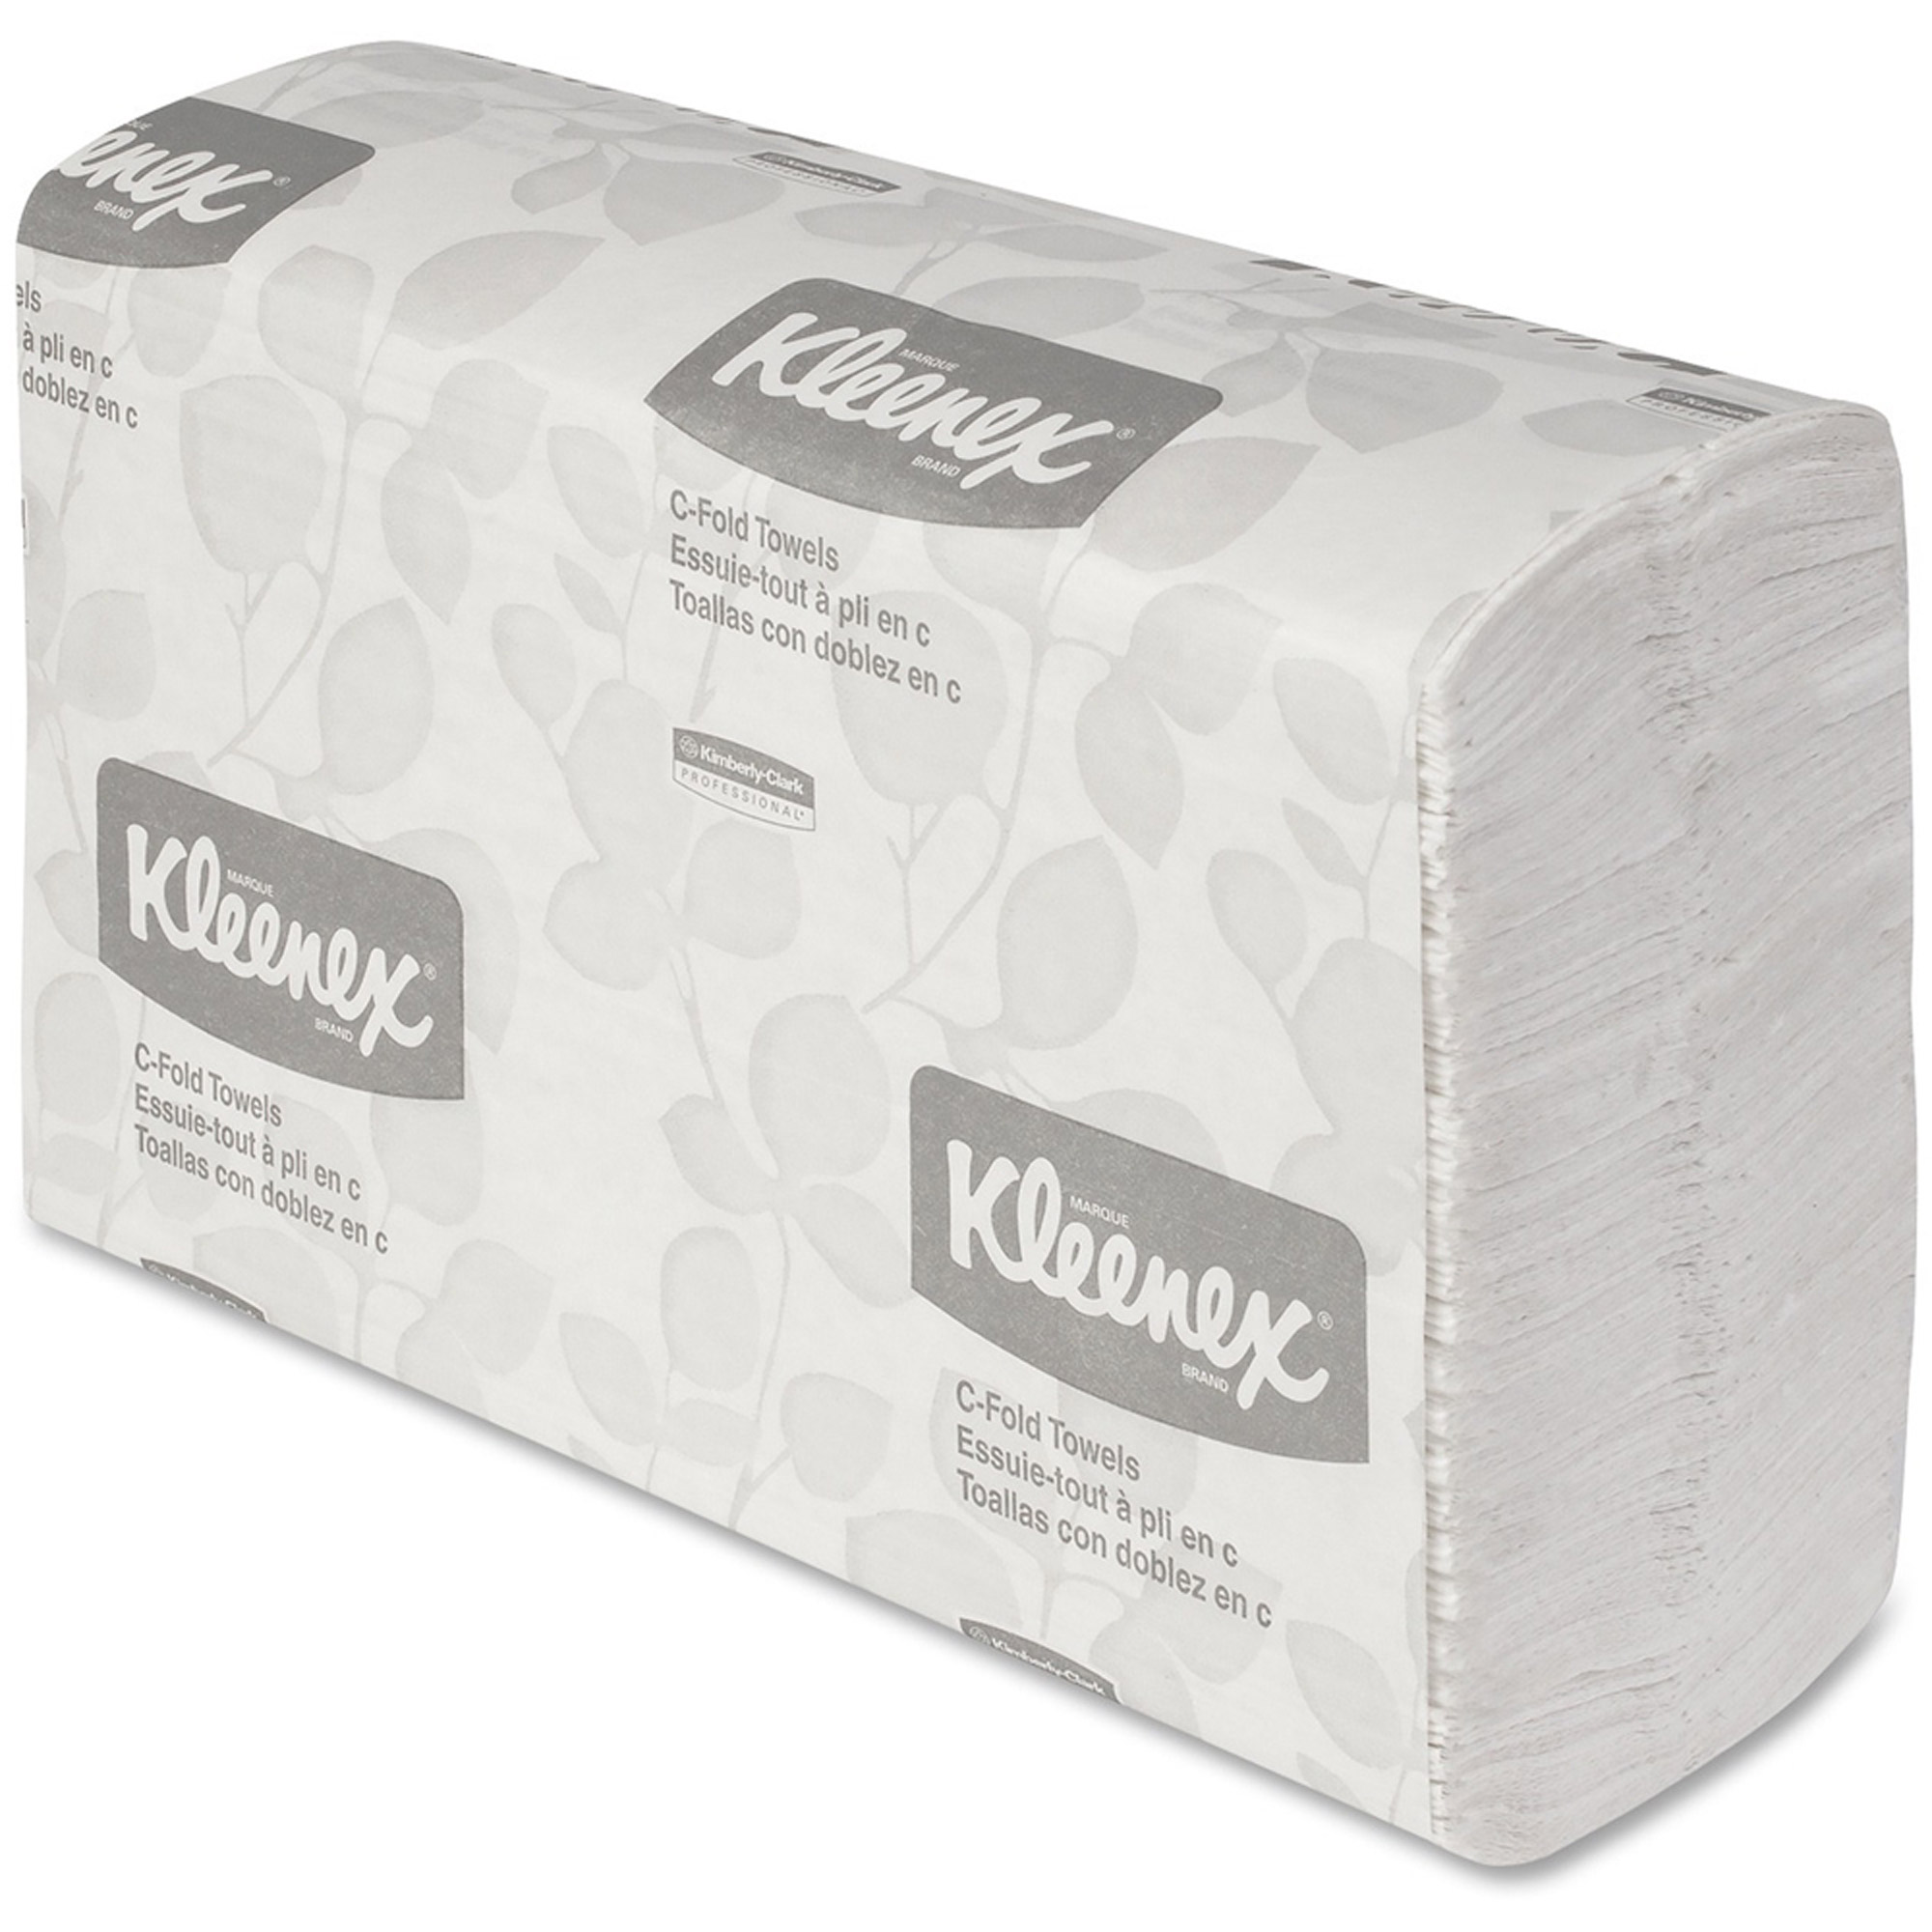 Kleenex Premium C-Fold Paper Towels, 150 sheets, (Pack of 16)